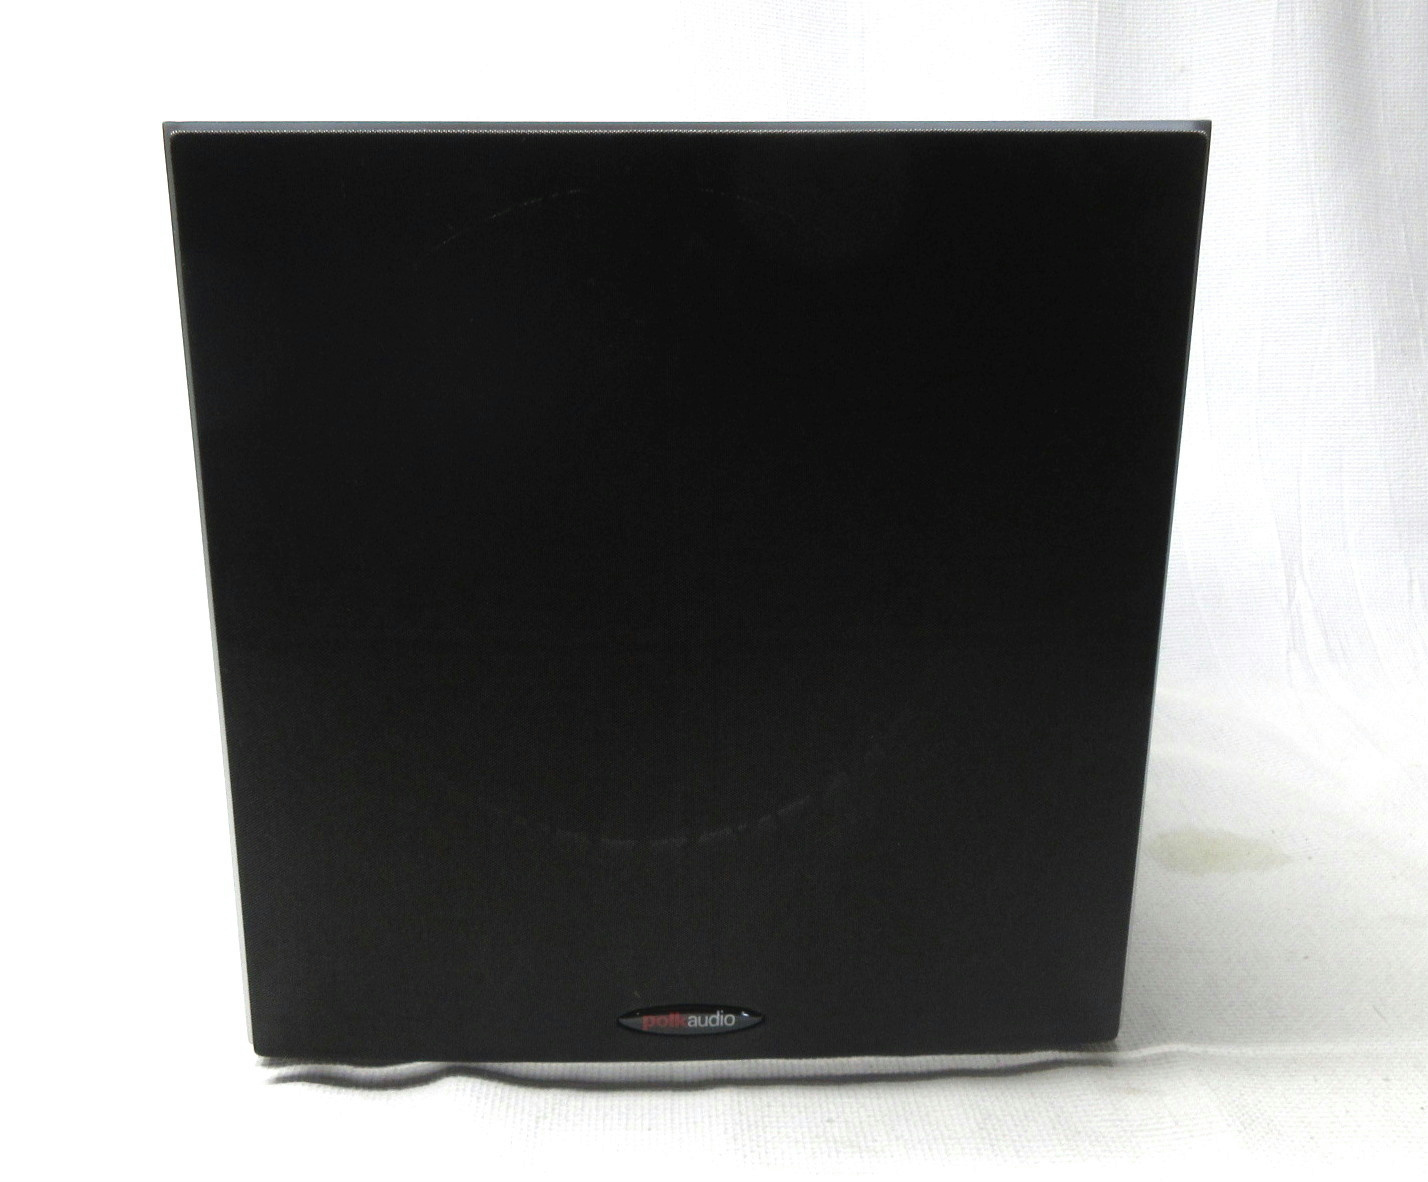 polk black single women Find helpful customer reviews and review ratings for polk audio csi a4 center channel speaker (single, black) at amazoncom read honest and unbiased product reviews from our users.